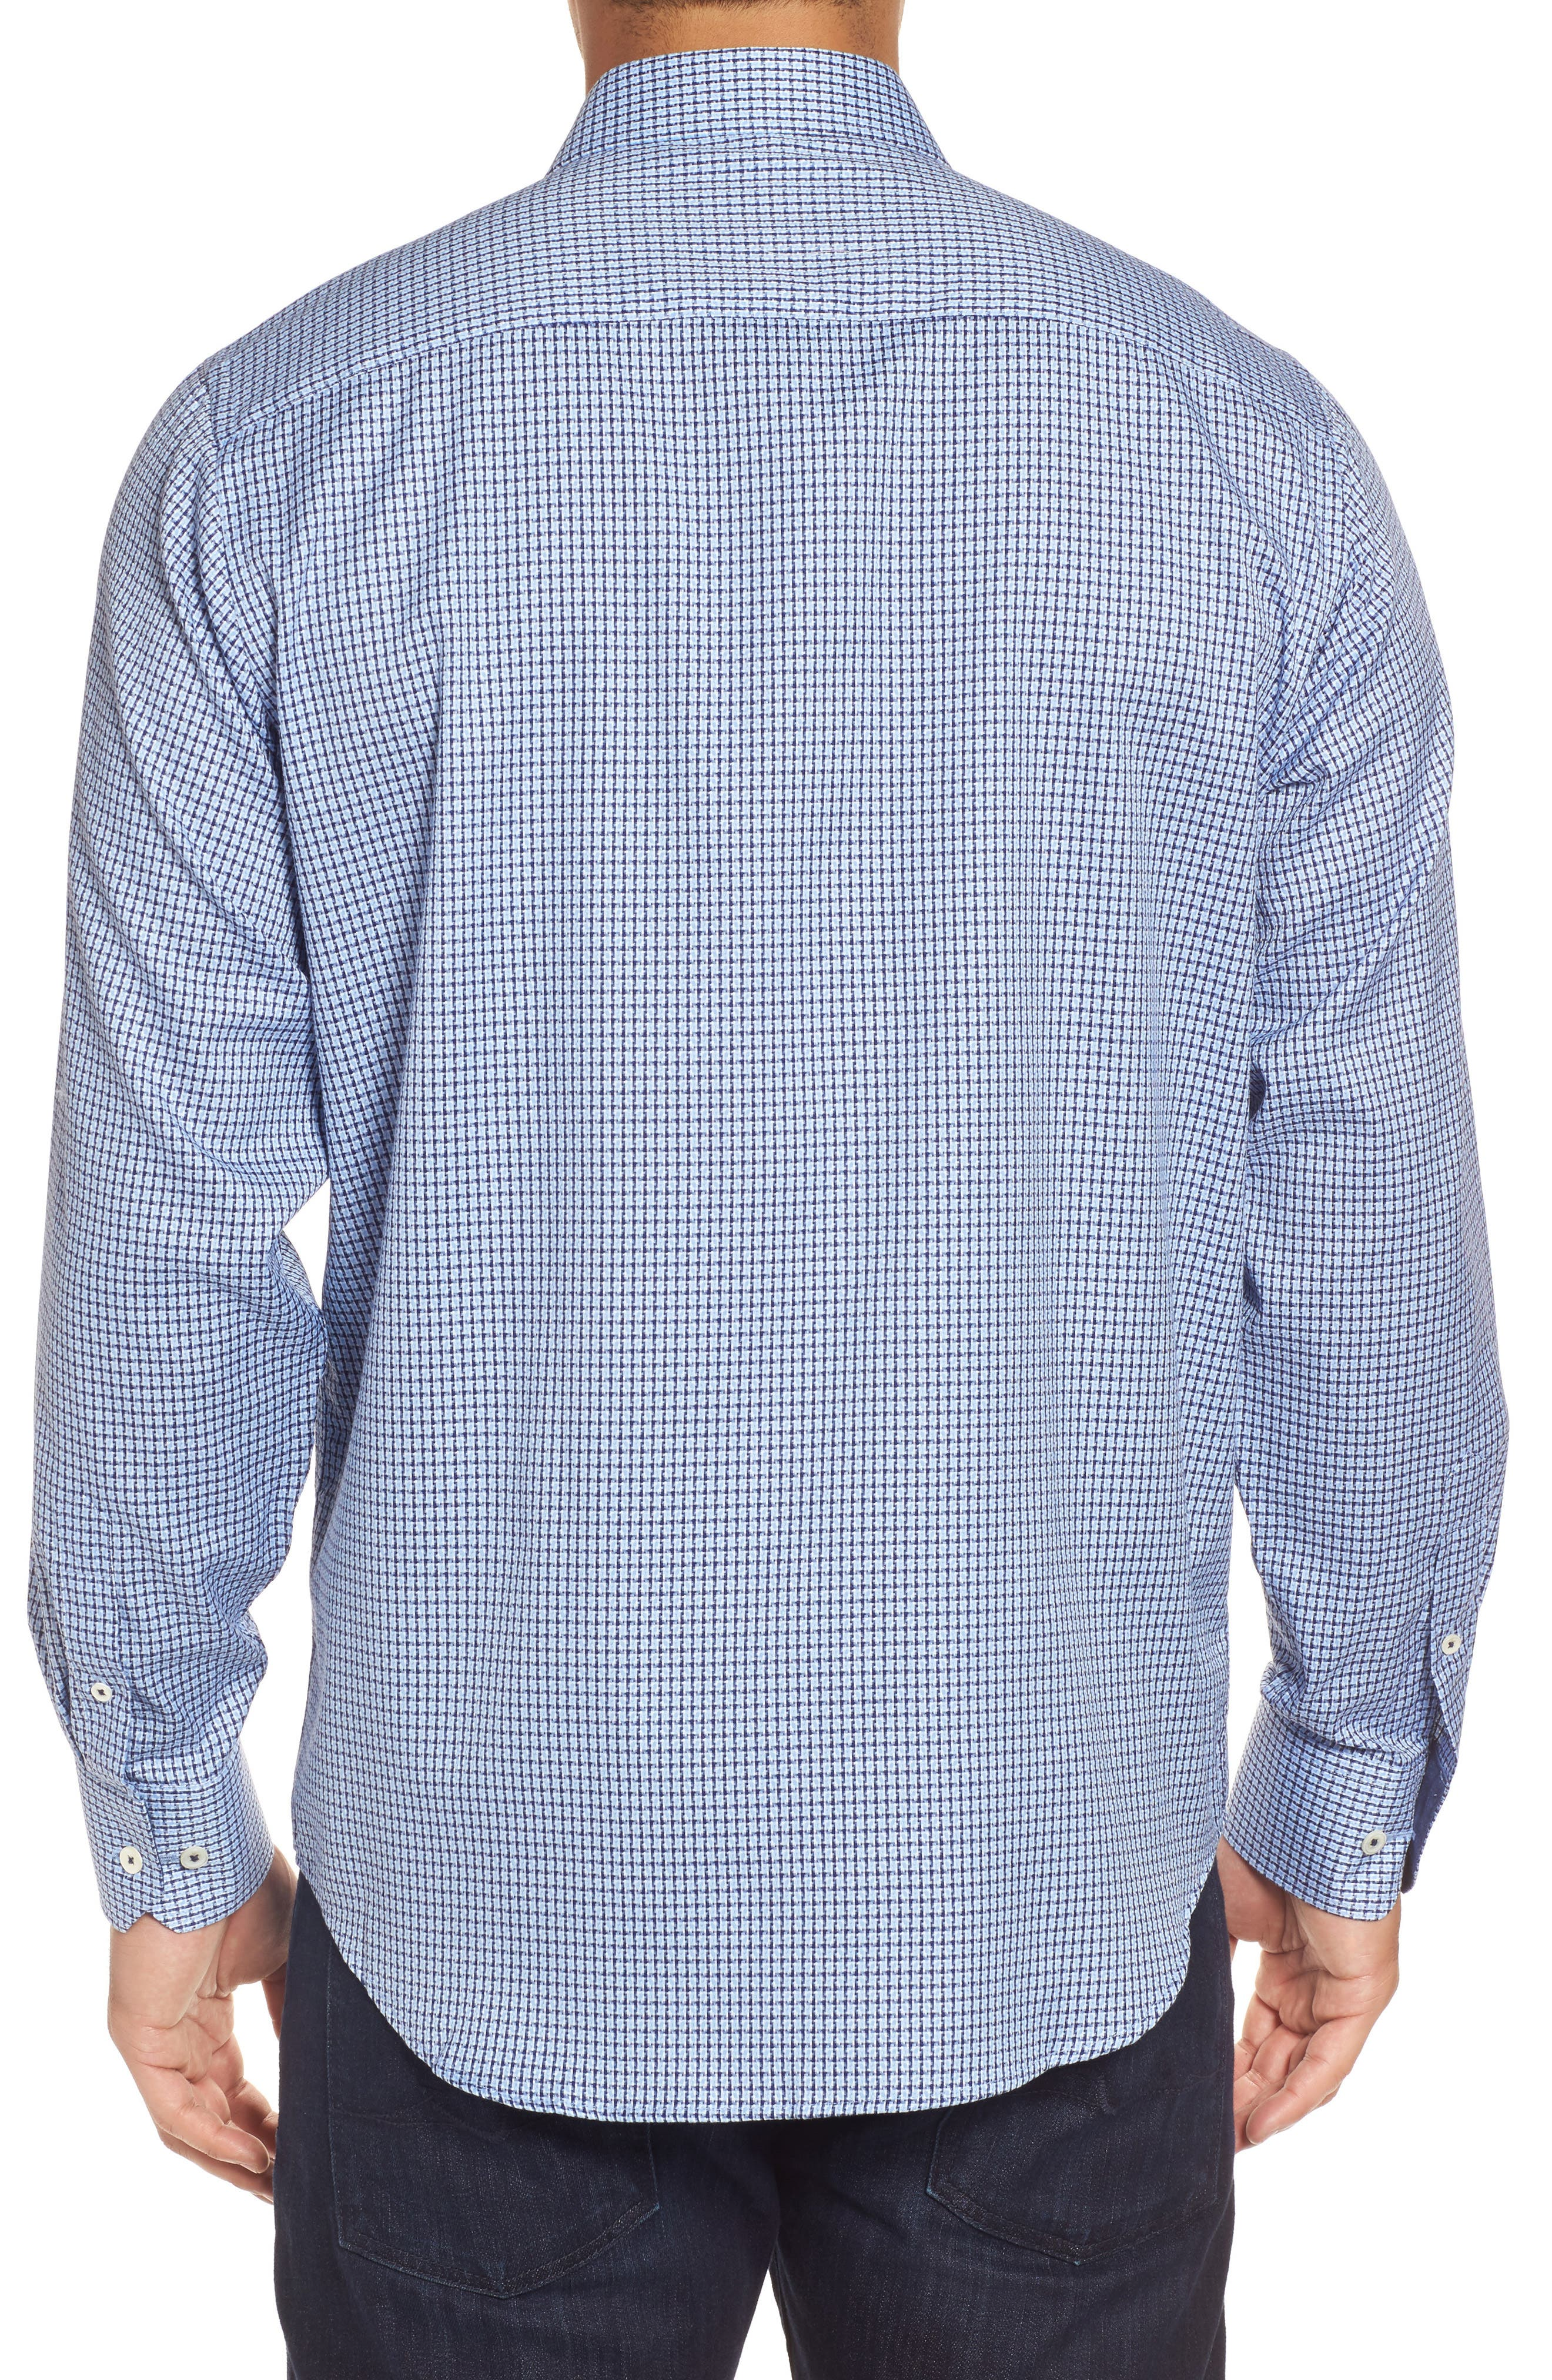 Classic Fit Micro Grid Sport Shirt,                             Alternate thumbnail 2, color,                             423